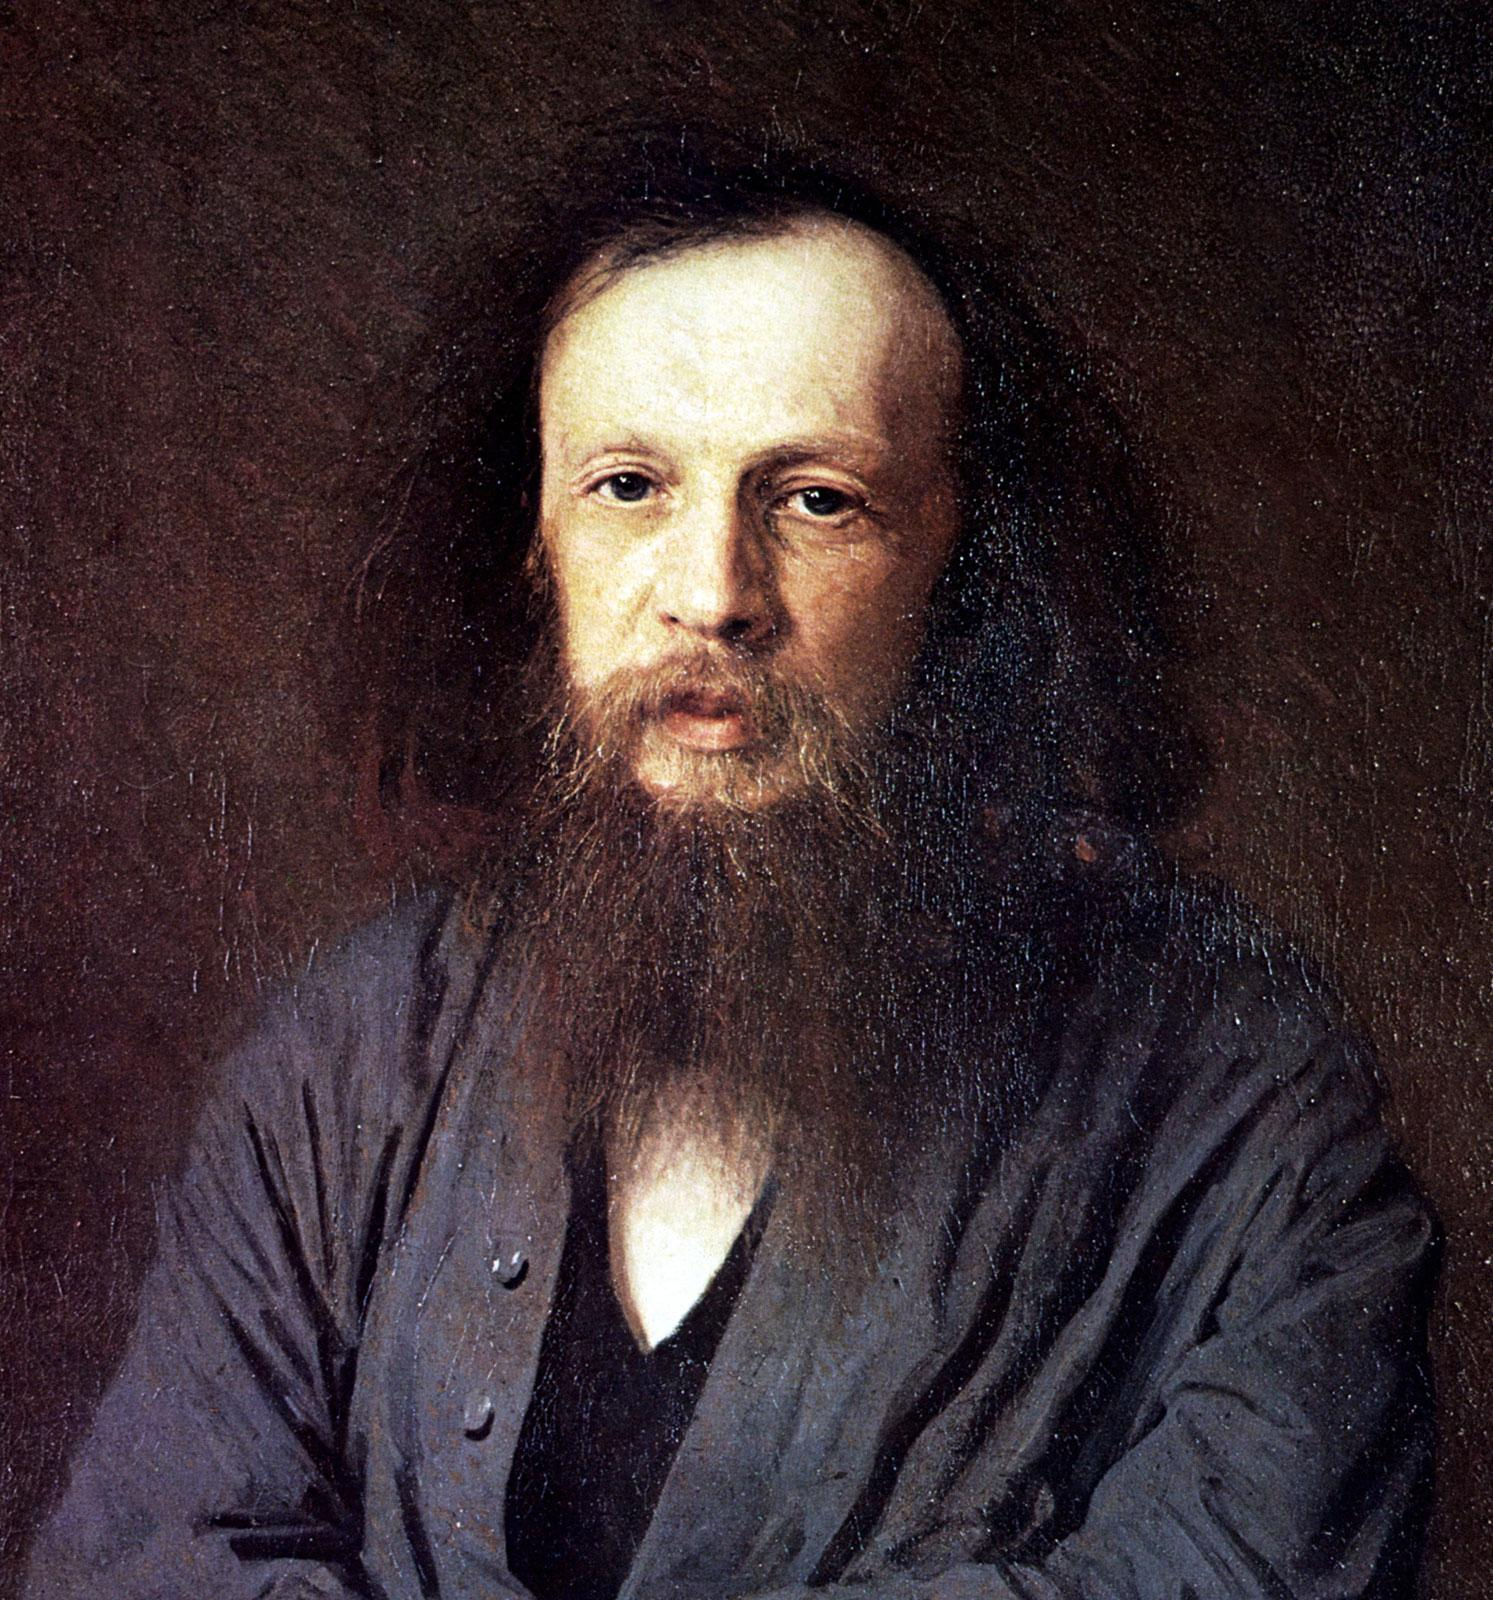 periodic table, mendeleev, elements